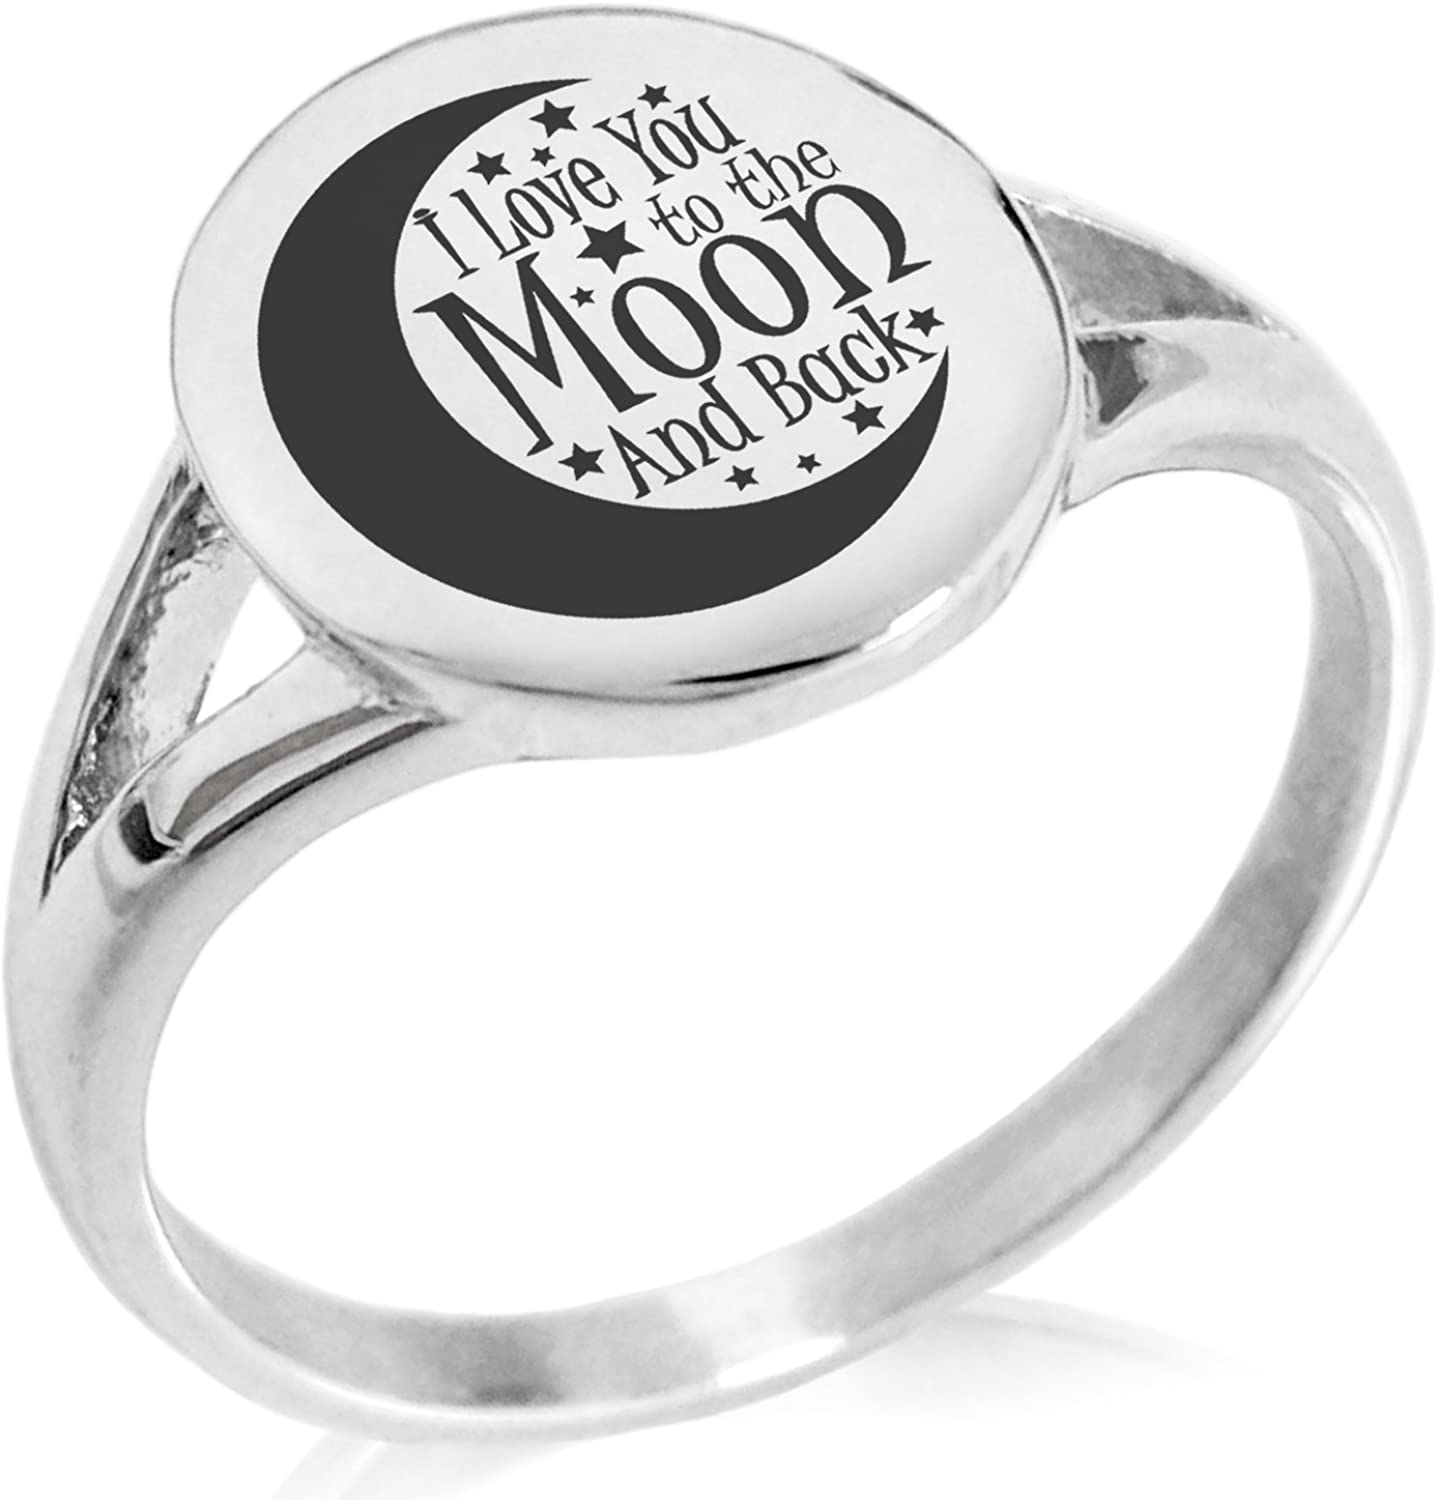 Tioneer Stainless Steel Crescent I Love You to The Moon and Back Minimalist Oval Top Polished Statement Ring